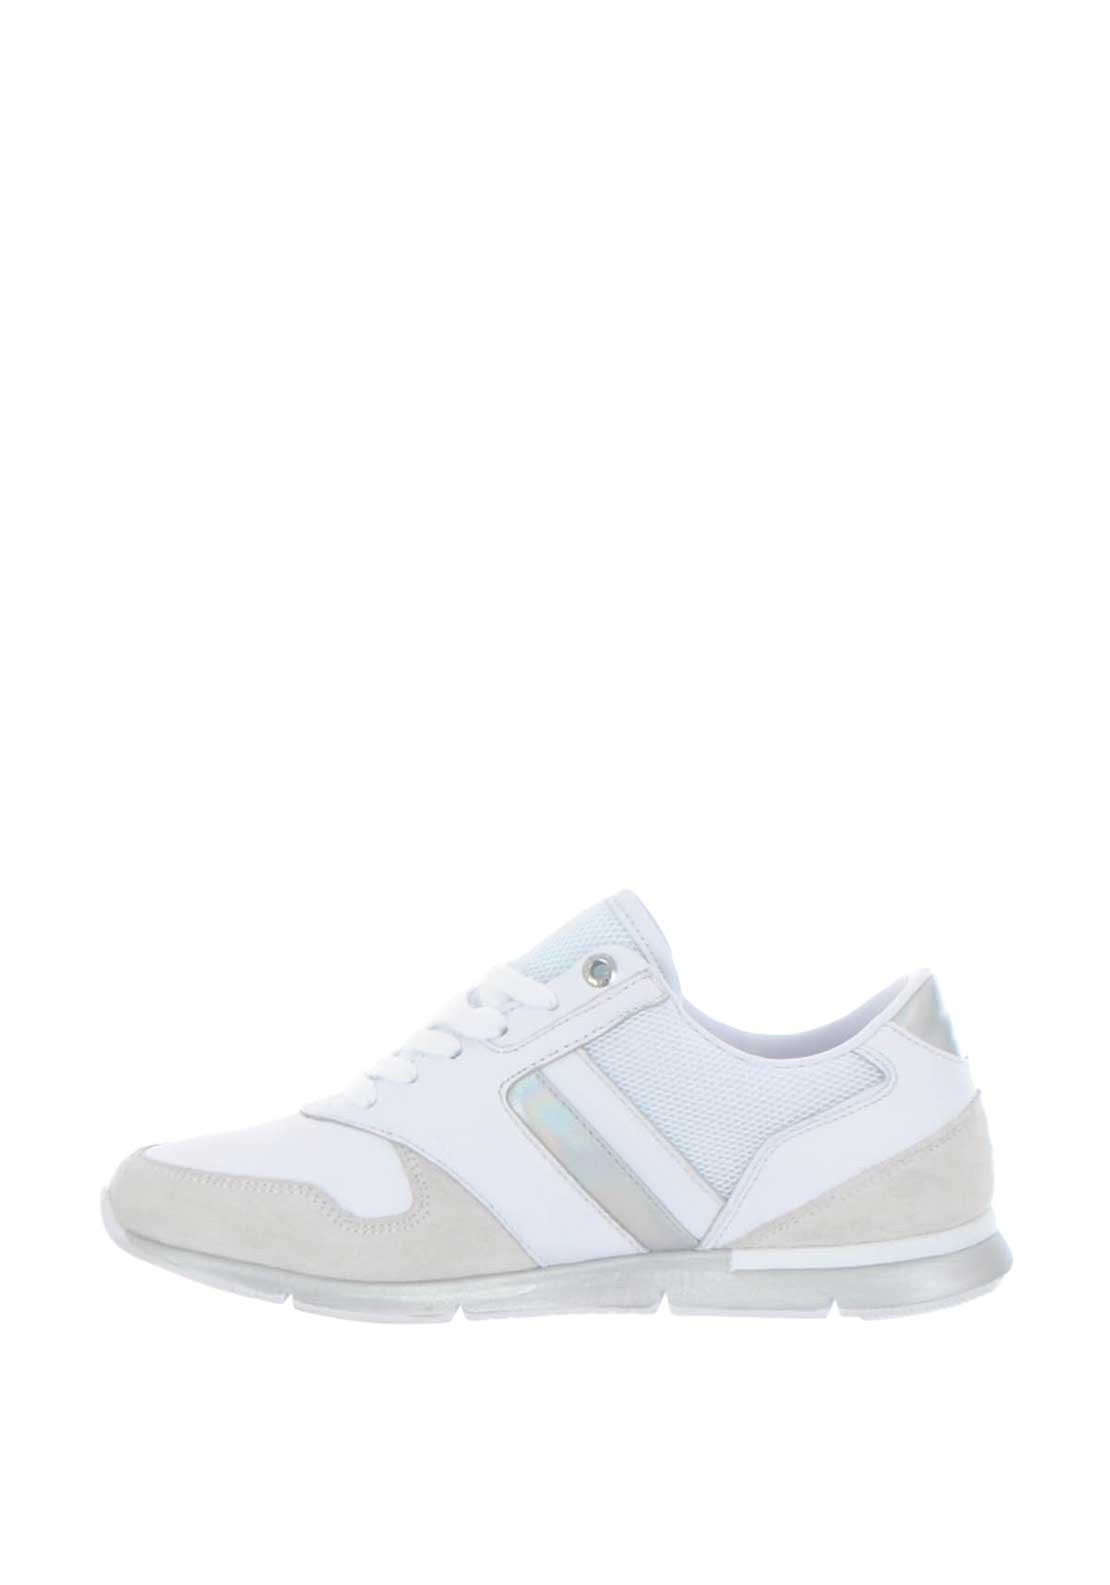 19cd52b9d Tommy Hilfiger Womens Iridescent Light Trainers, Silver. Be the first to  review this product